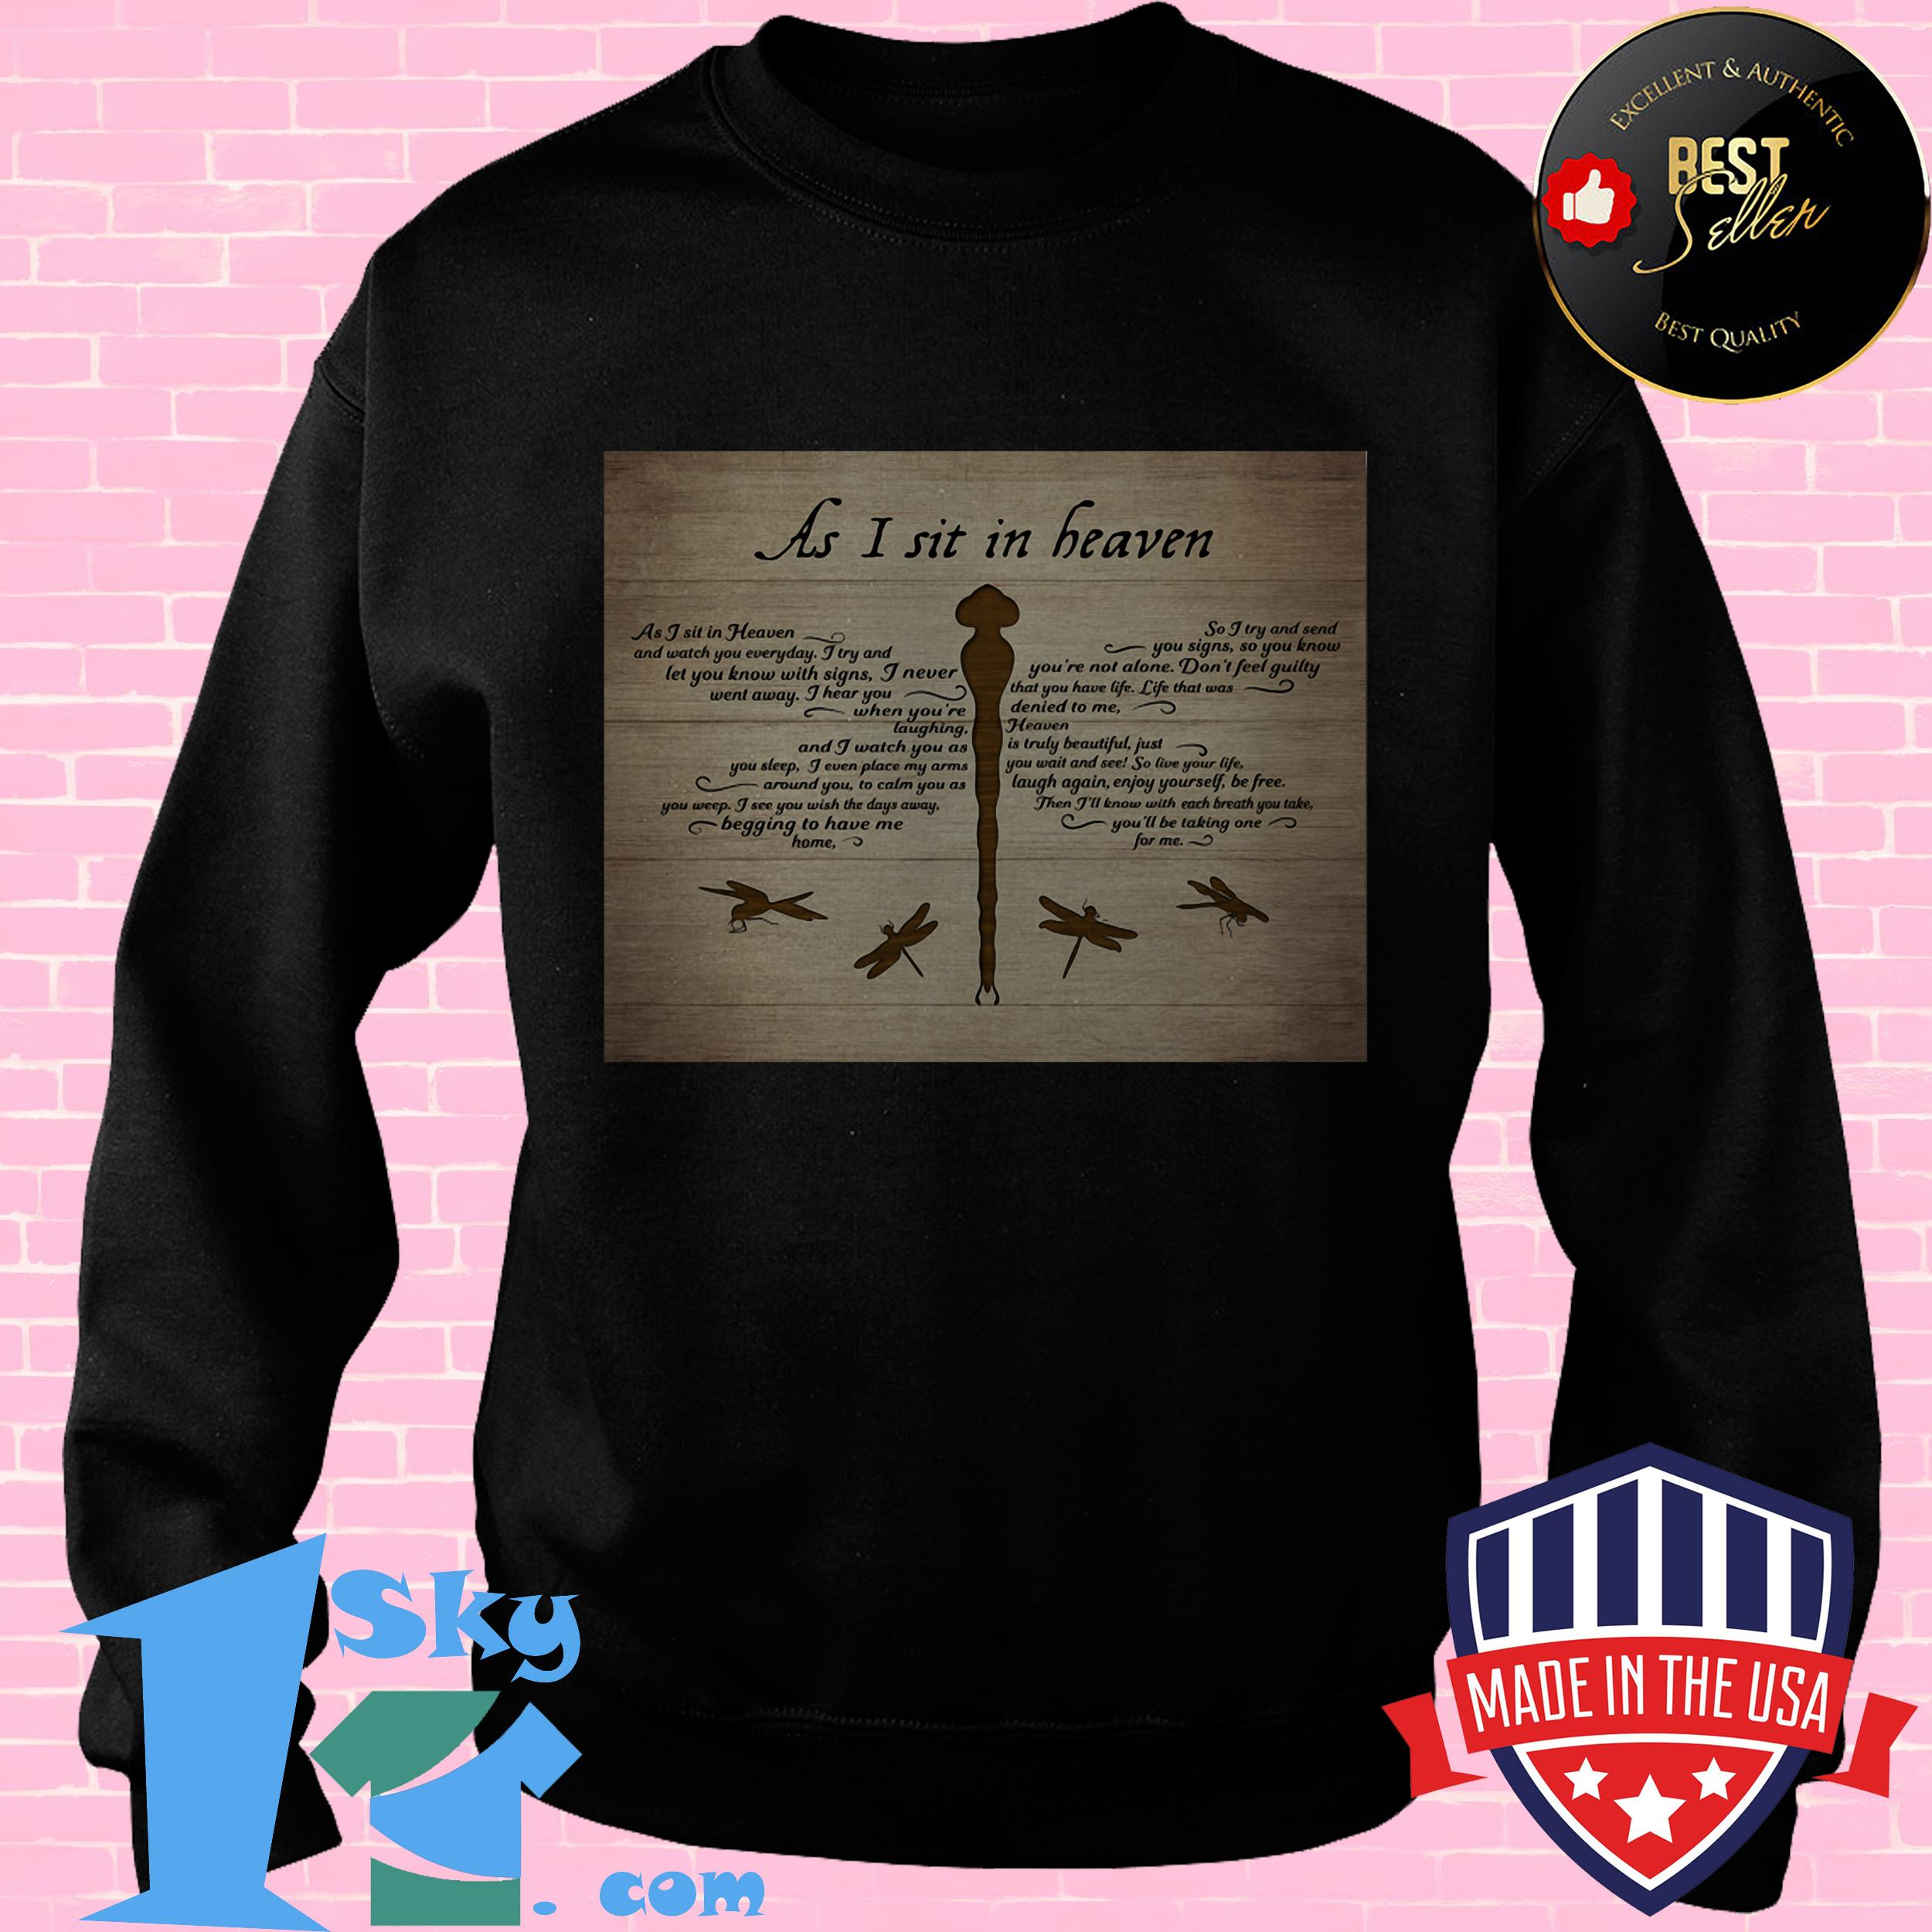 canvas dragonflies as i sit in heaven sweatshirt - Canvas Dragonflies As I Sit In Heaven shirt